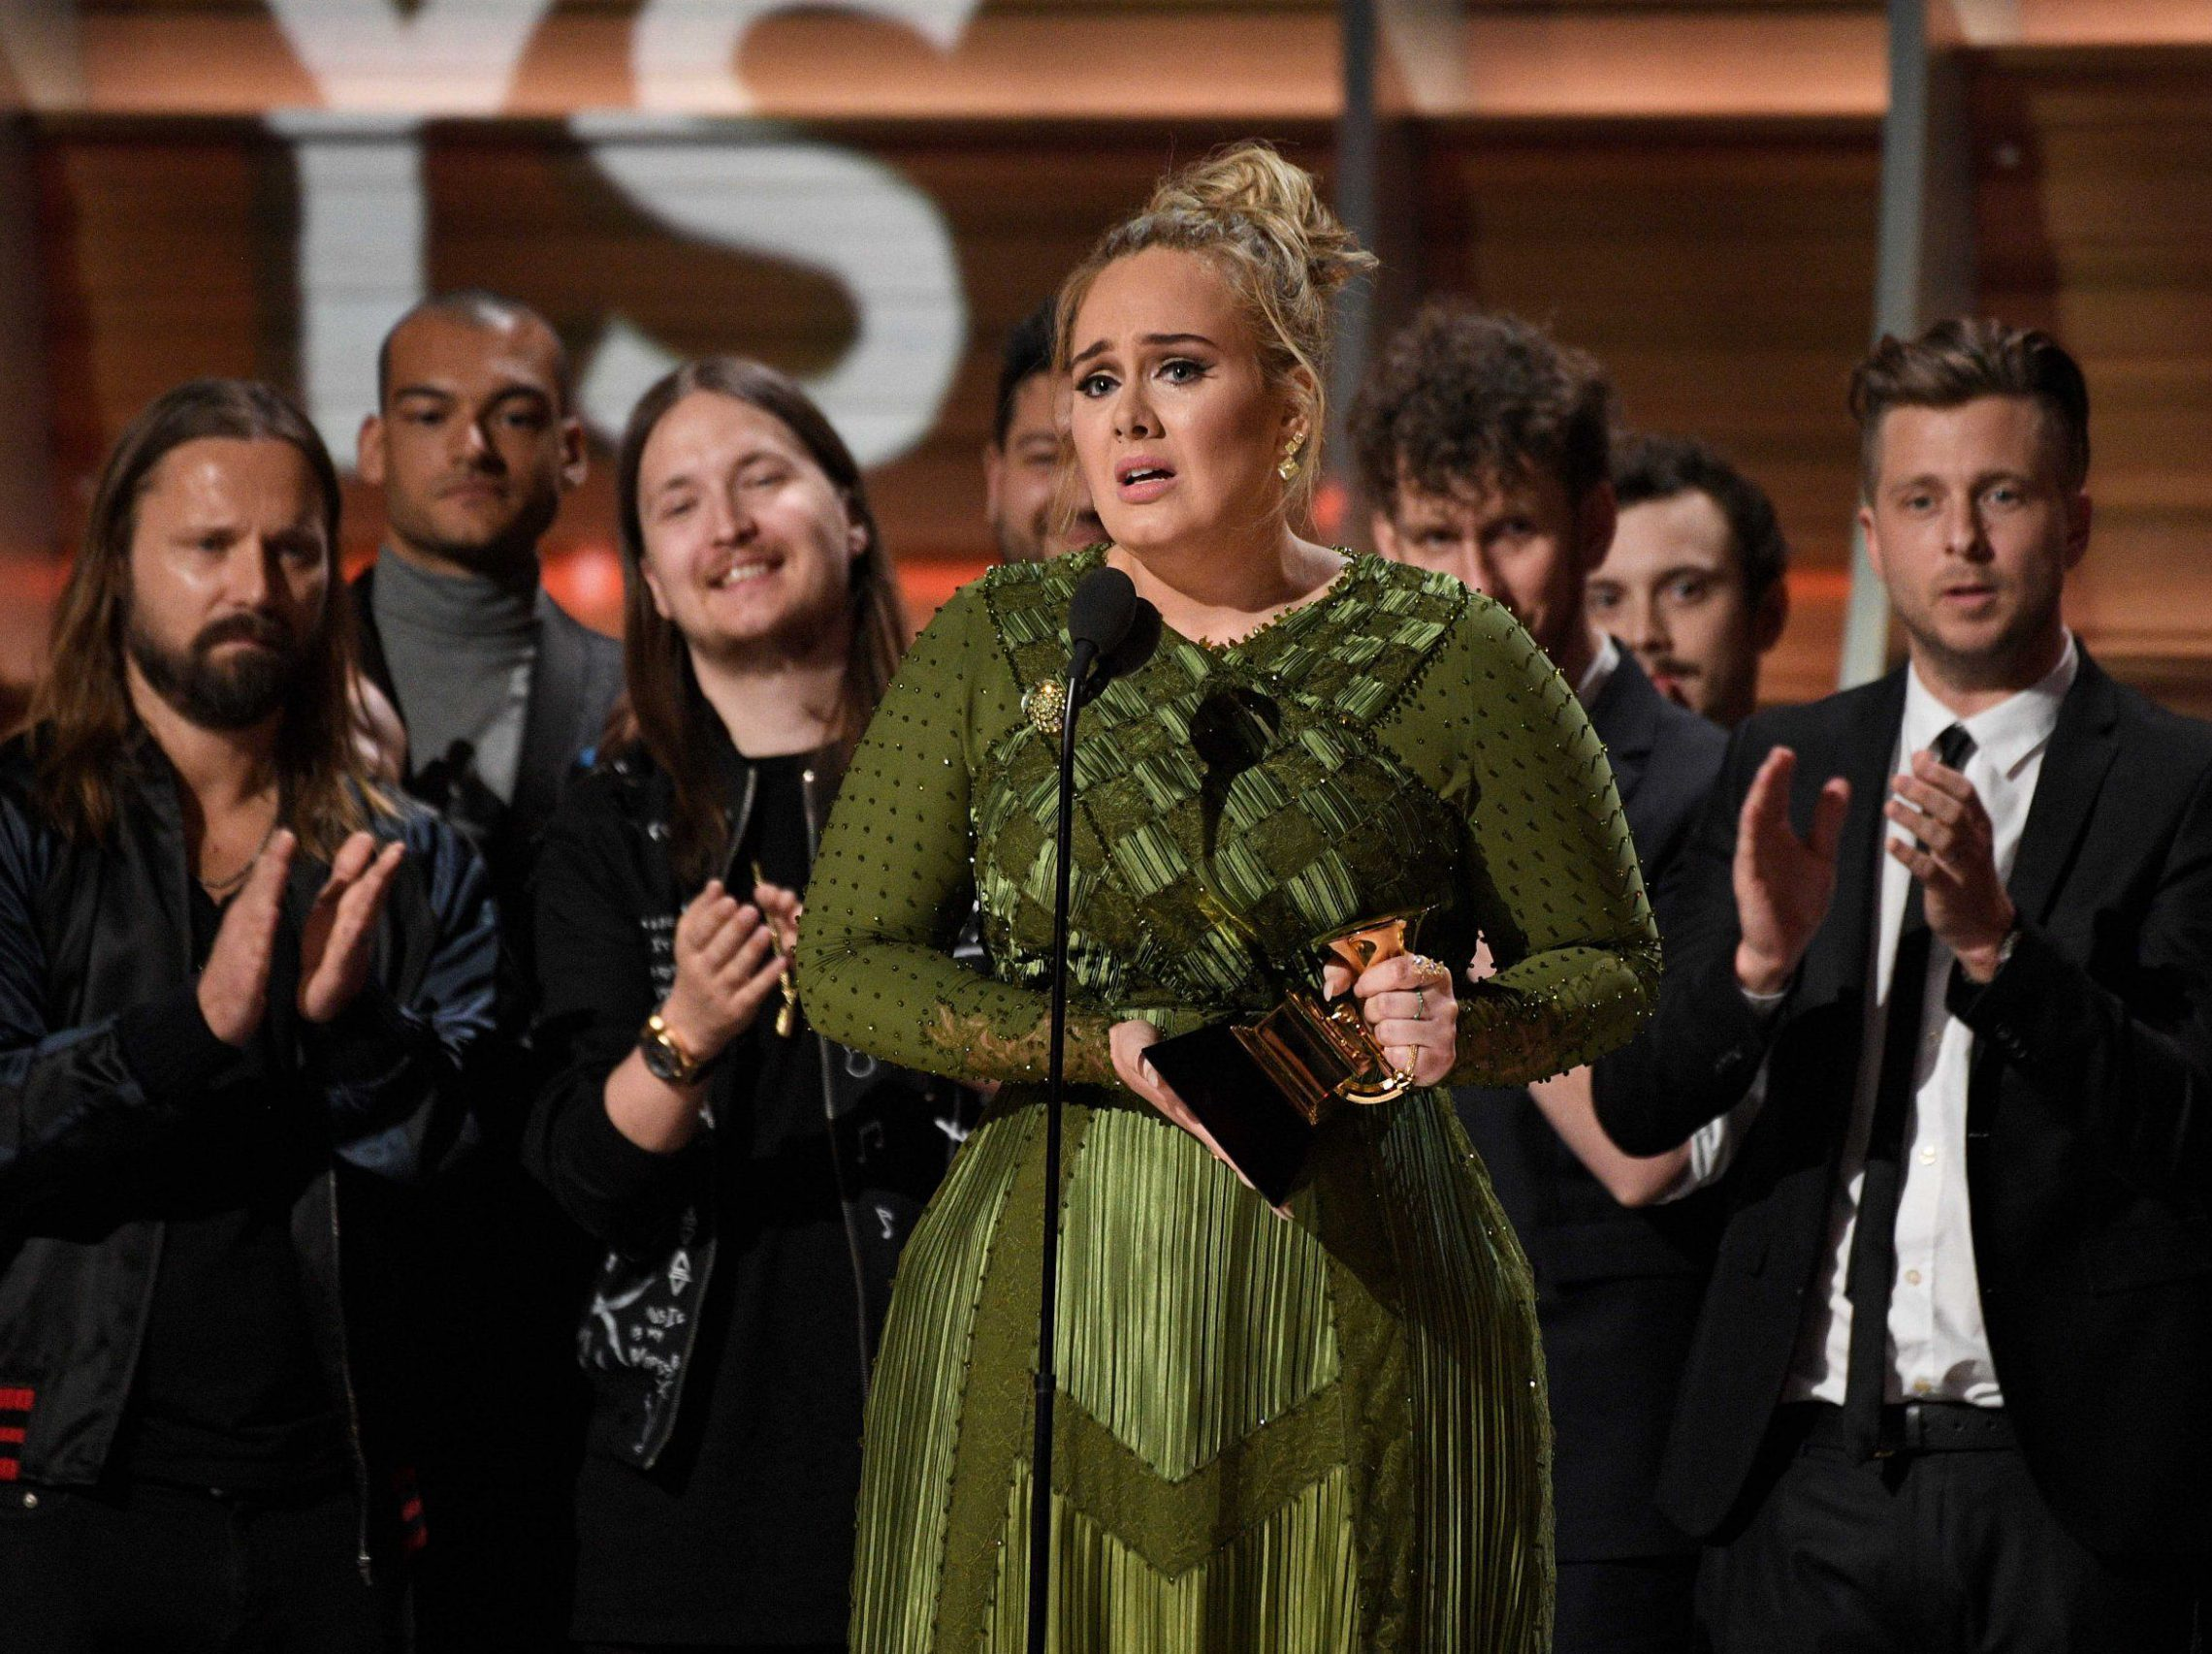 Mandatory Credit: Photo by ddp USA/REX/Shutterstock (8345070dx) Adele receives Album of the Year 59th Annual Grammy Awards, Show, Los Angeles, USA - 12 Feb 2017